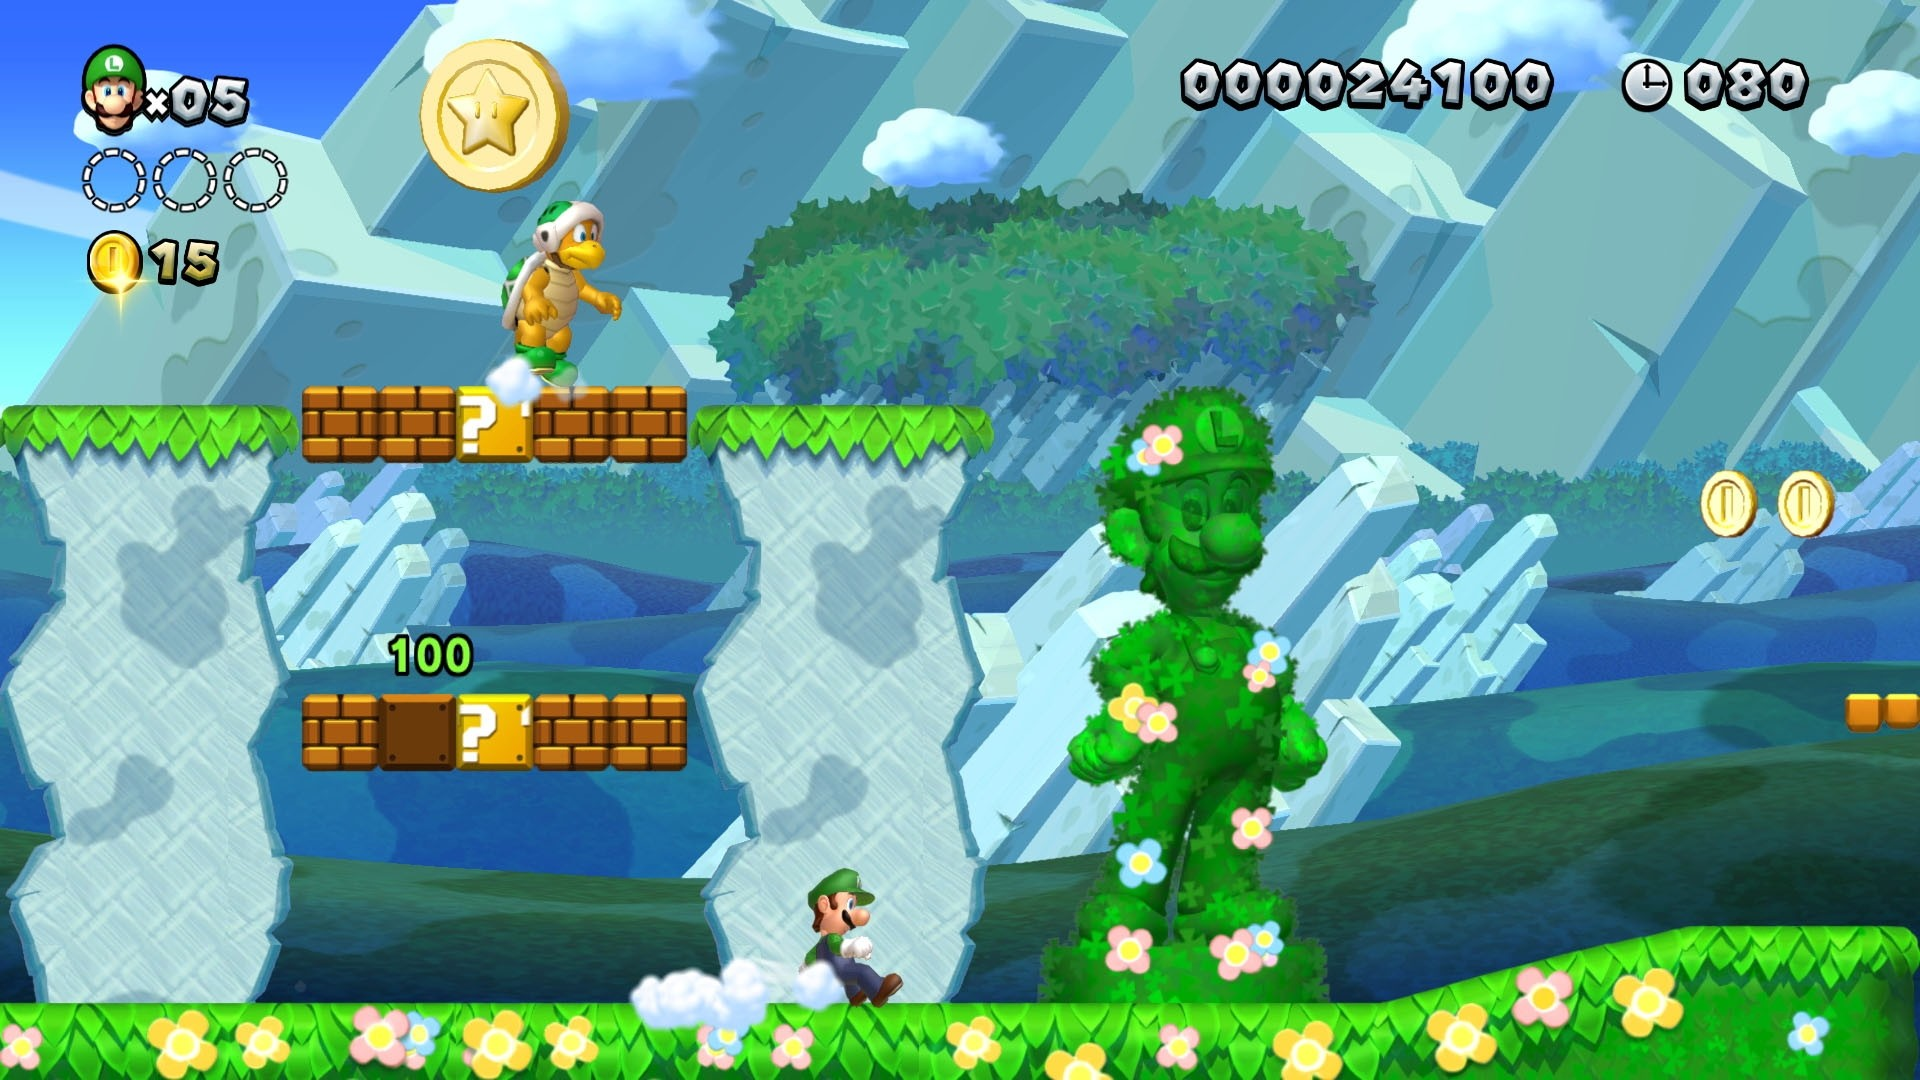 boom reviews Super Mario Bros. U Deluxe